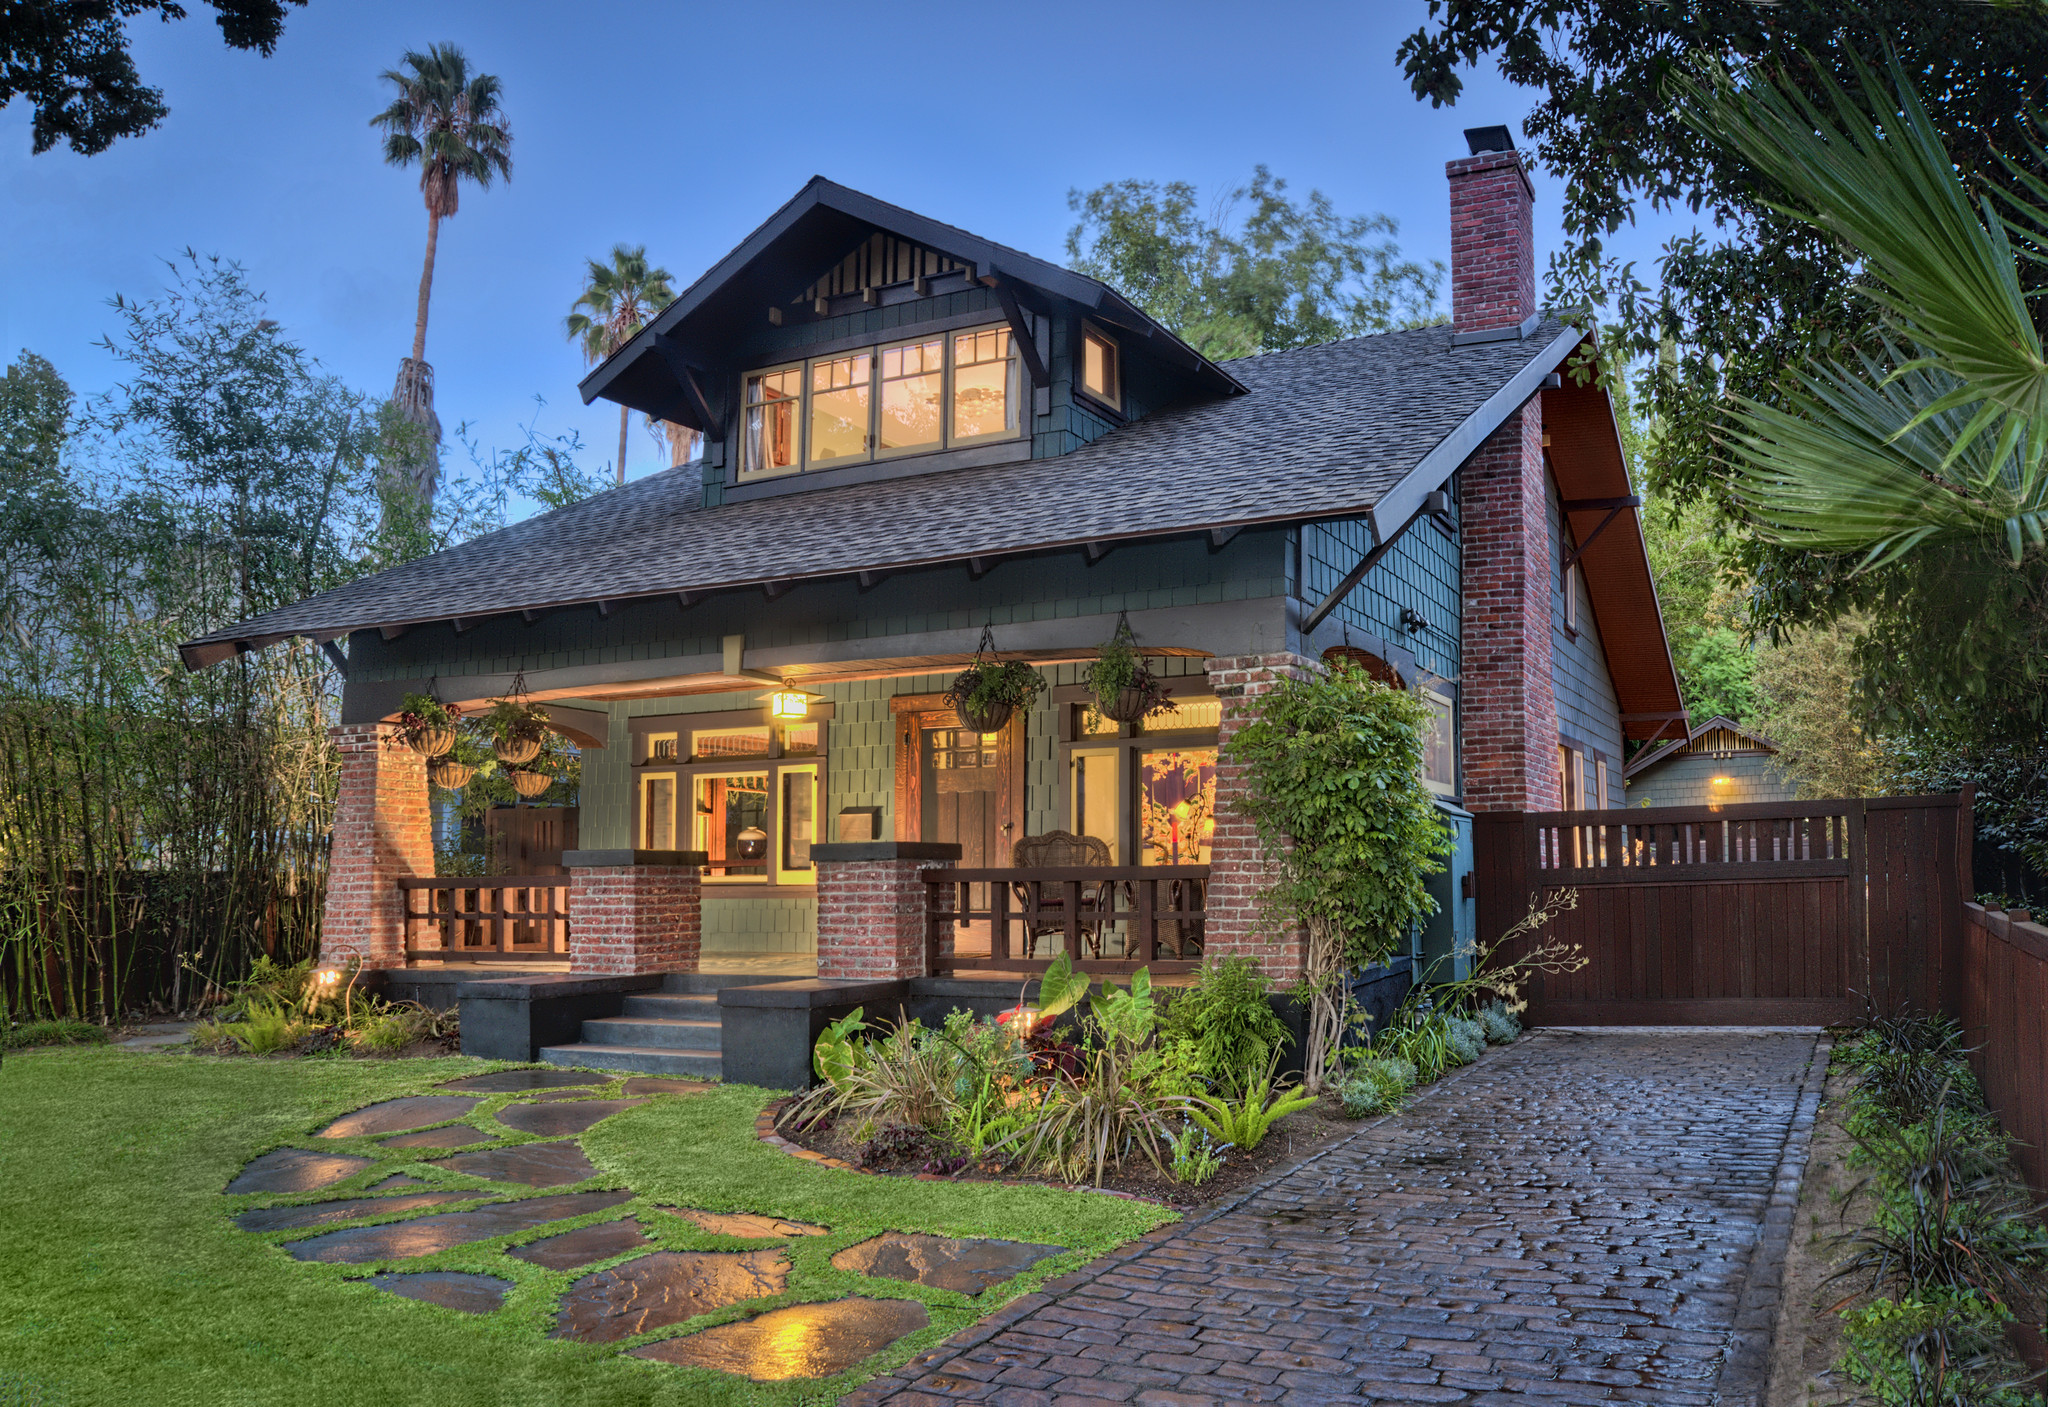 2014 craftsman weekend returns to pasadena la times for Craftsman houses photos